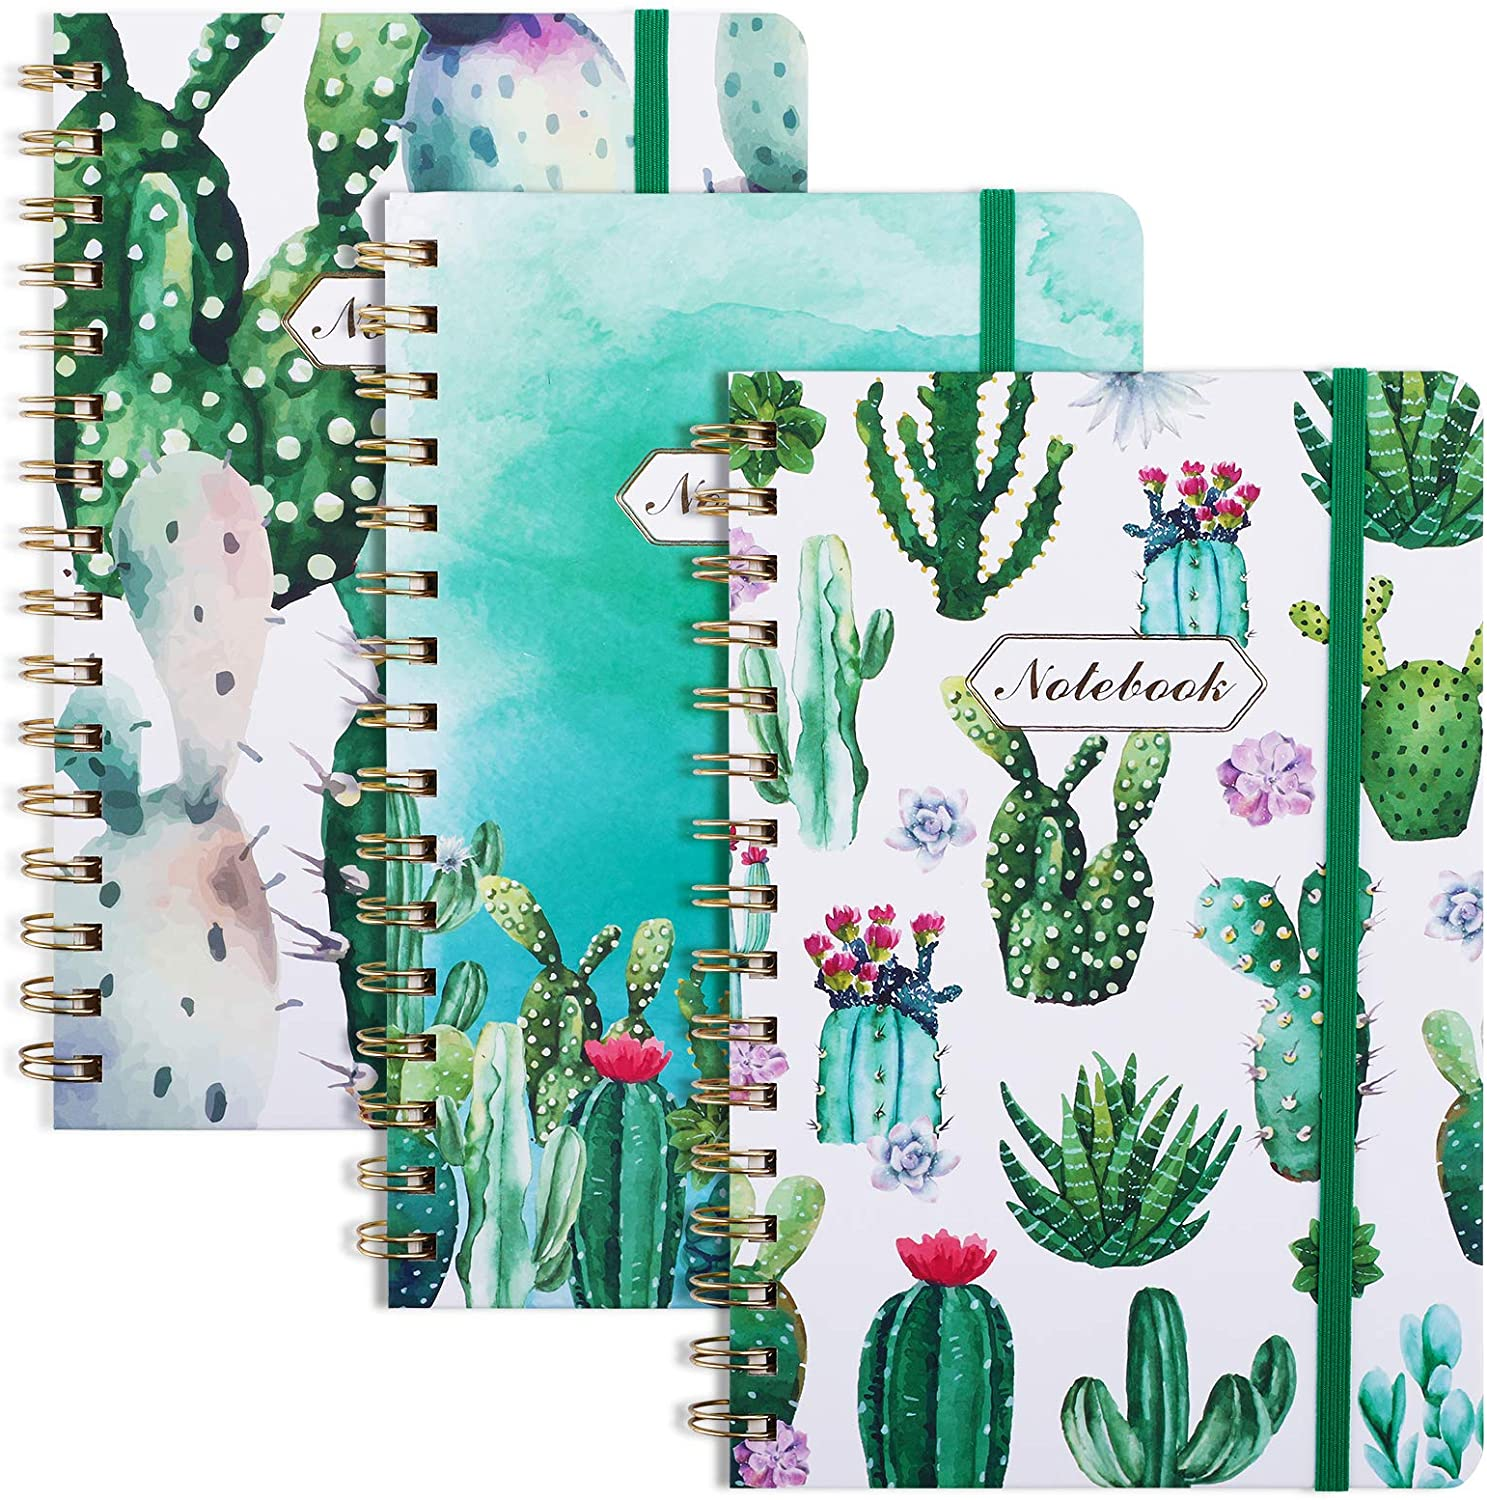 EOOUT 3 Pack A5 Spiral Notebook, Ruled Journal, 6